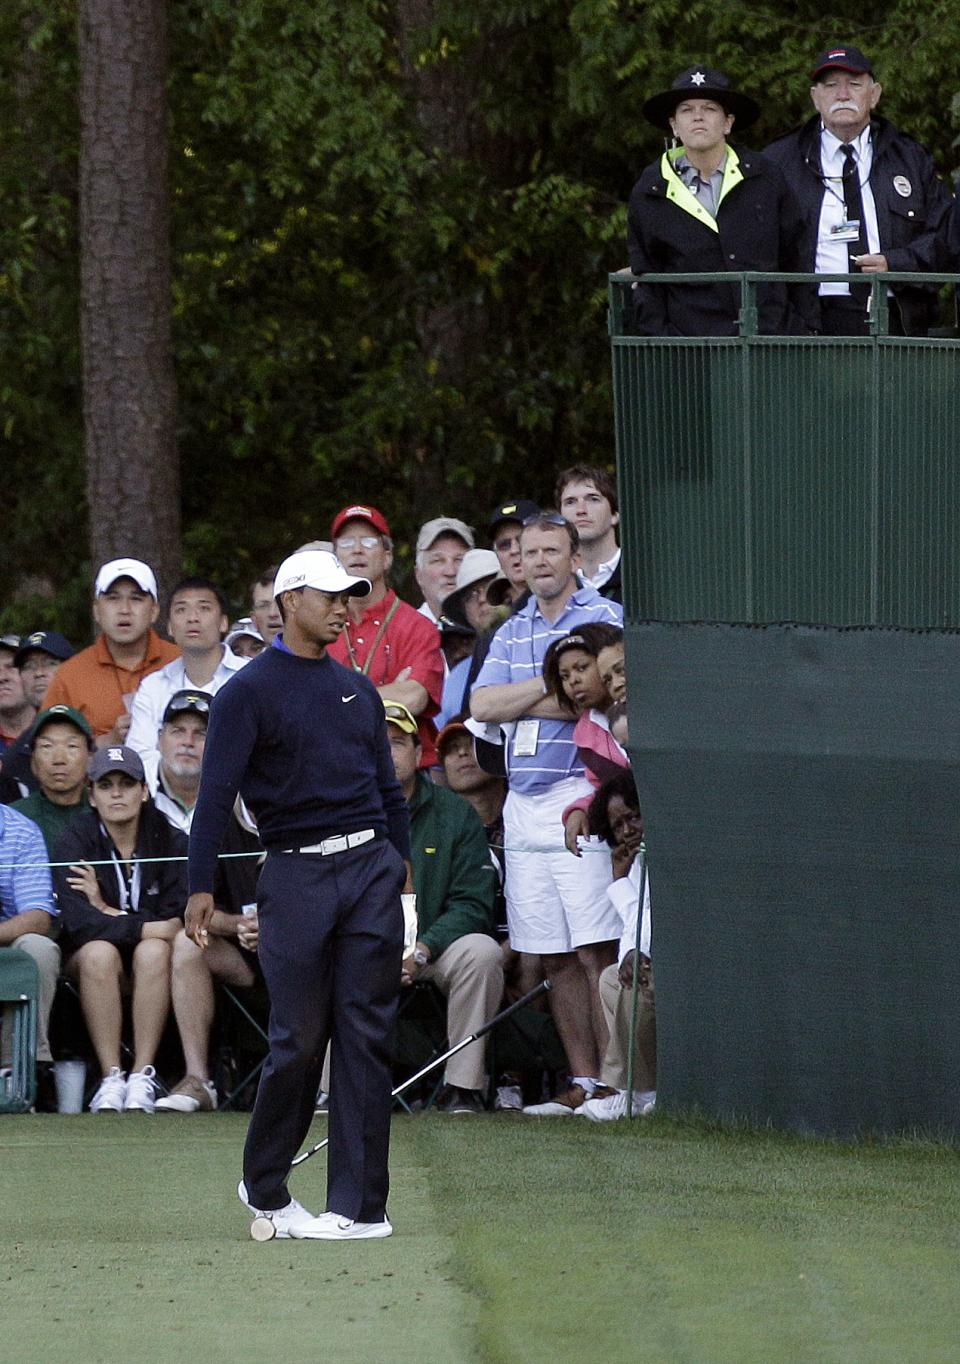 Tiger Woods reacts to his tee shot on the 16th hole during the second round of the Masters golf tournament Friday, April 6, 2012, in Augusta, Ga. (AP Photo/Matt Slocum)